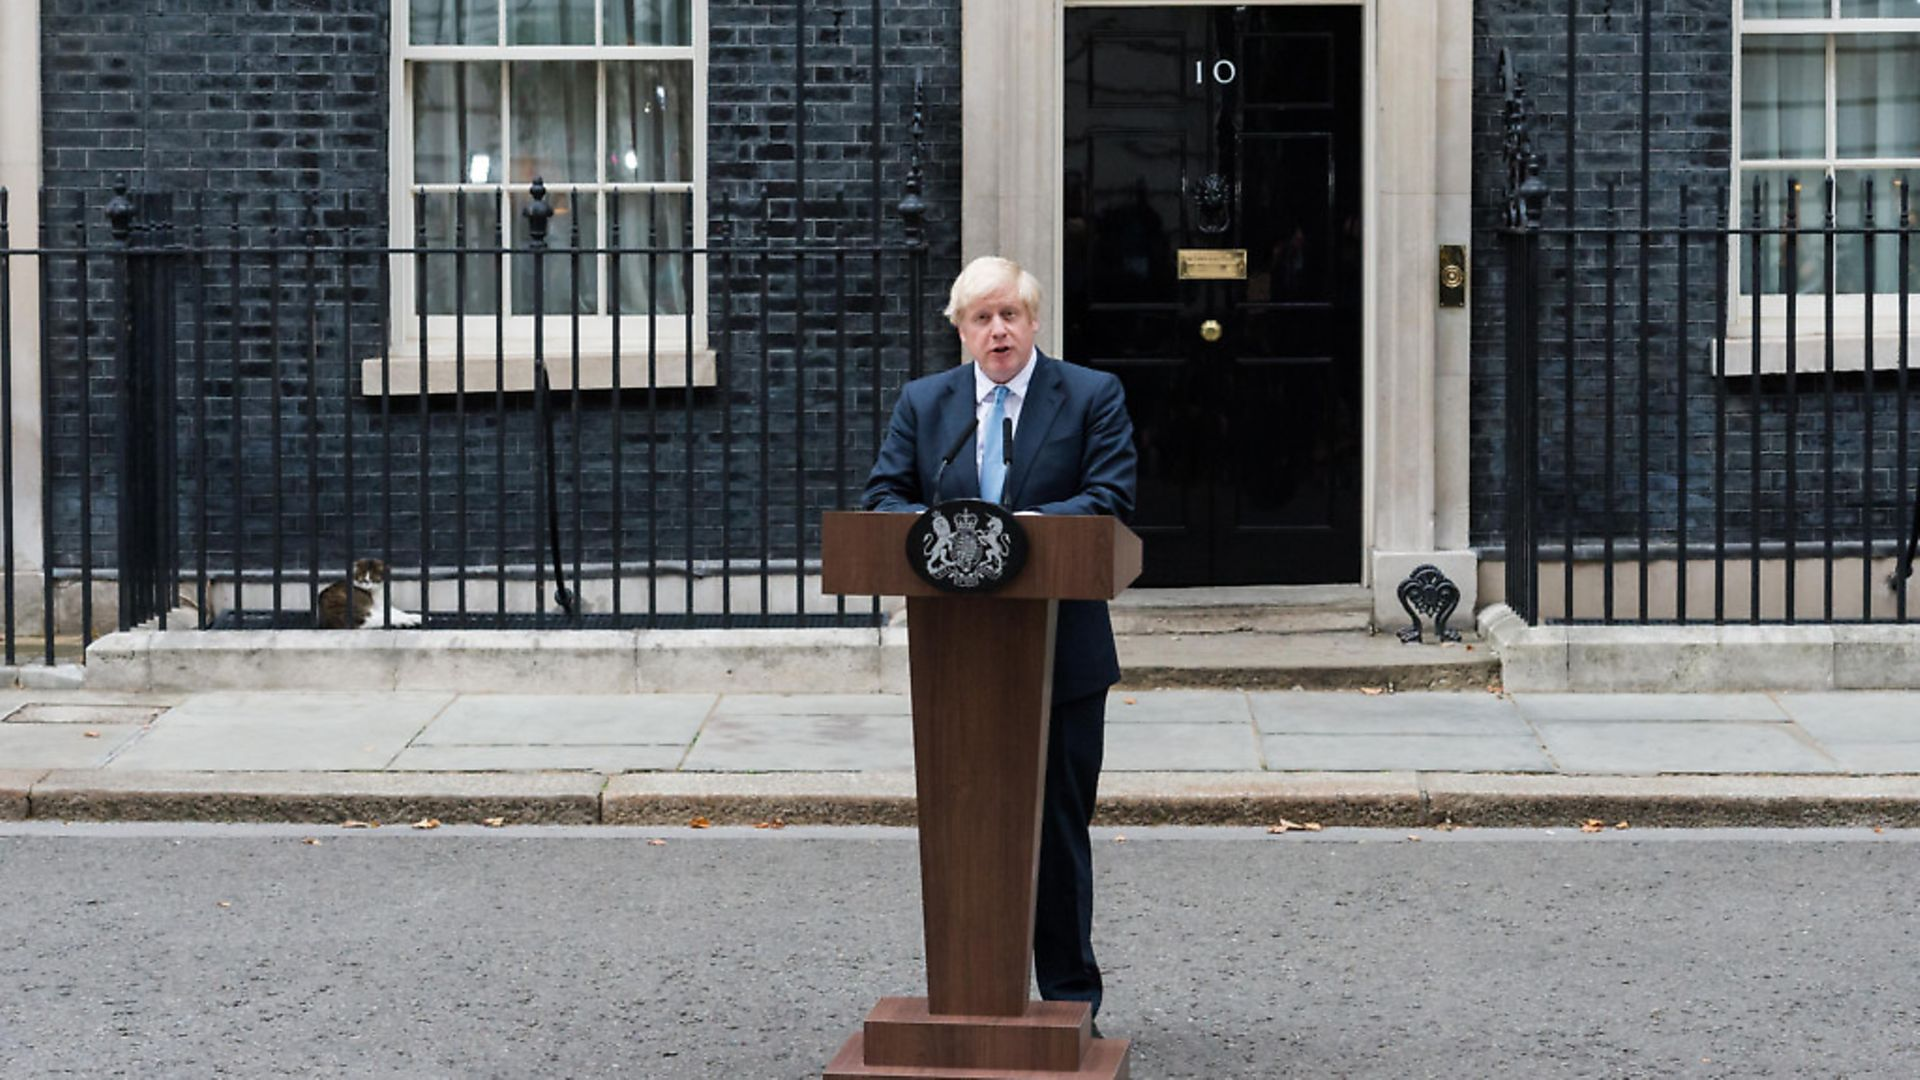 LONDON, UNITED KINGDOM - SEP 02:  British Prime Minister Boris Johnson makes a statement to the media outside 10 Downing Street on 02 September 2019 in London, England. Boris Johnson has reiterated his aim to leave the EU with a negotiated deal on 31 October 2019 amid speculations that a general election could be called should the MPs legislate against no-deal Brexit when Parliament returns tomorrow. (Photo credit should read Wiktor Szymanowicz / Barcroft Media via Getty Images) - Credit: Barcroft Media via Getty Images